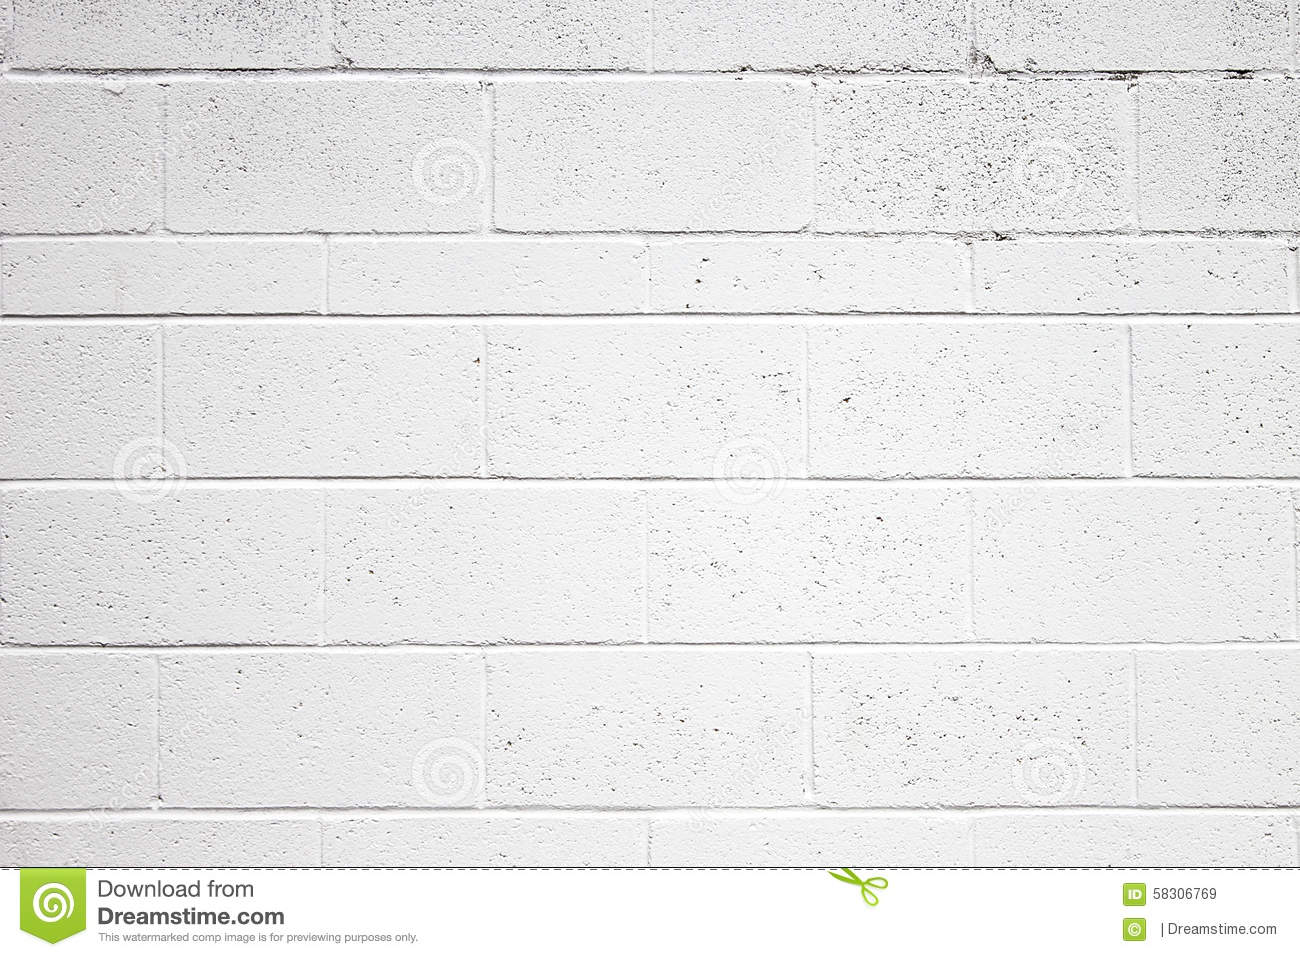 Painted cinder block wall texture - Block Cinder Painted Simple Texture Wall